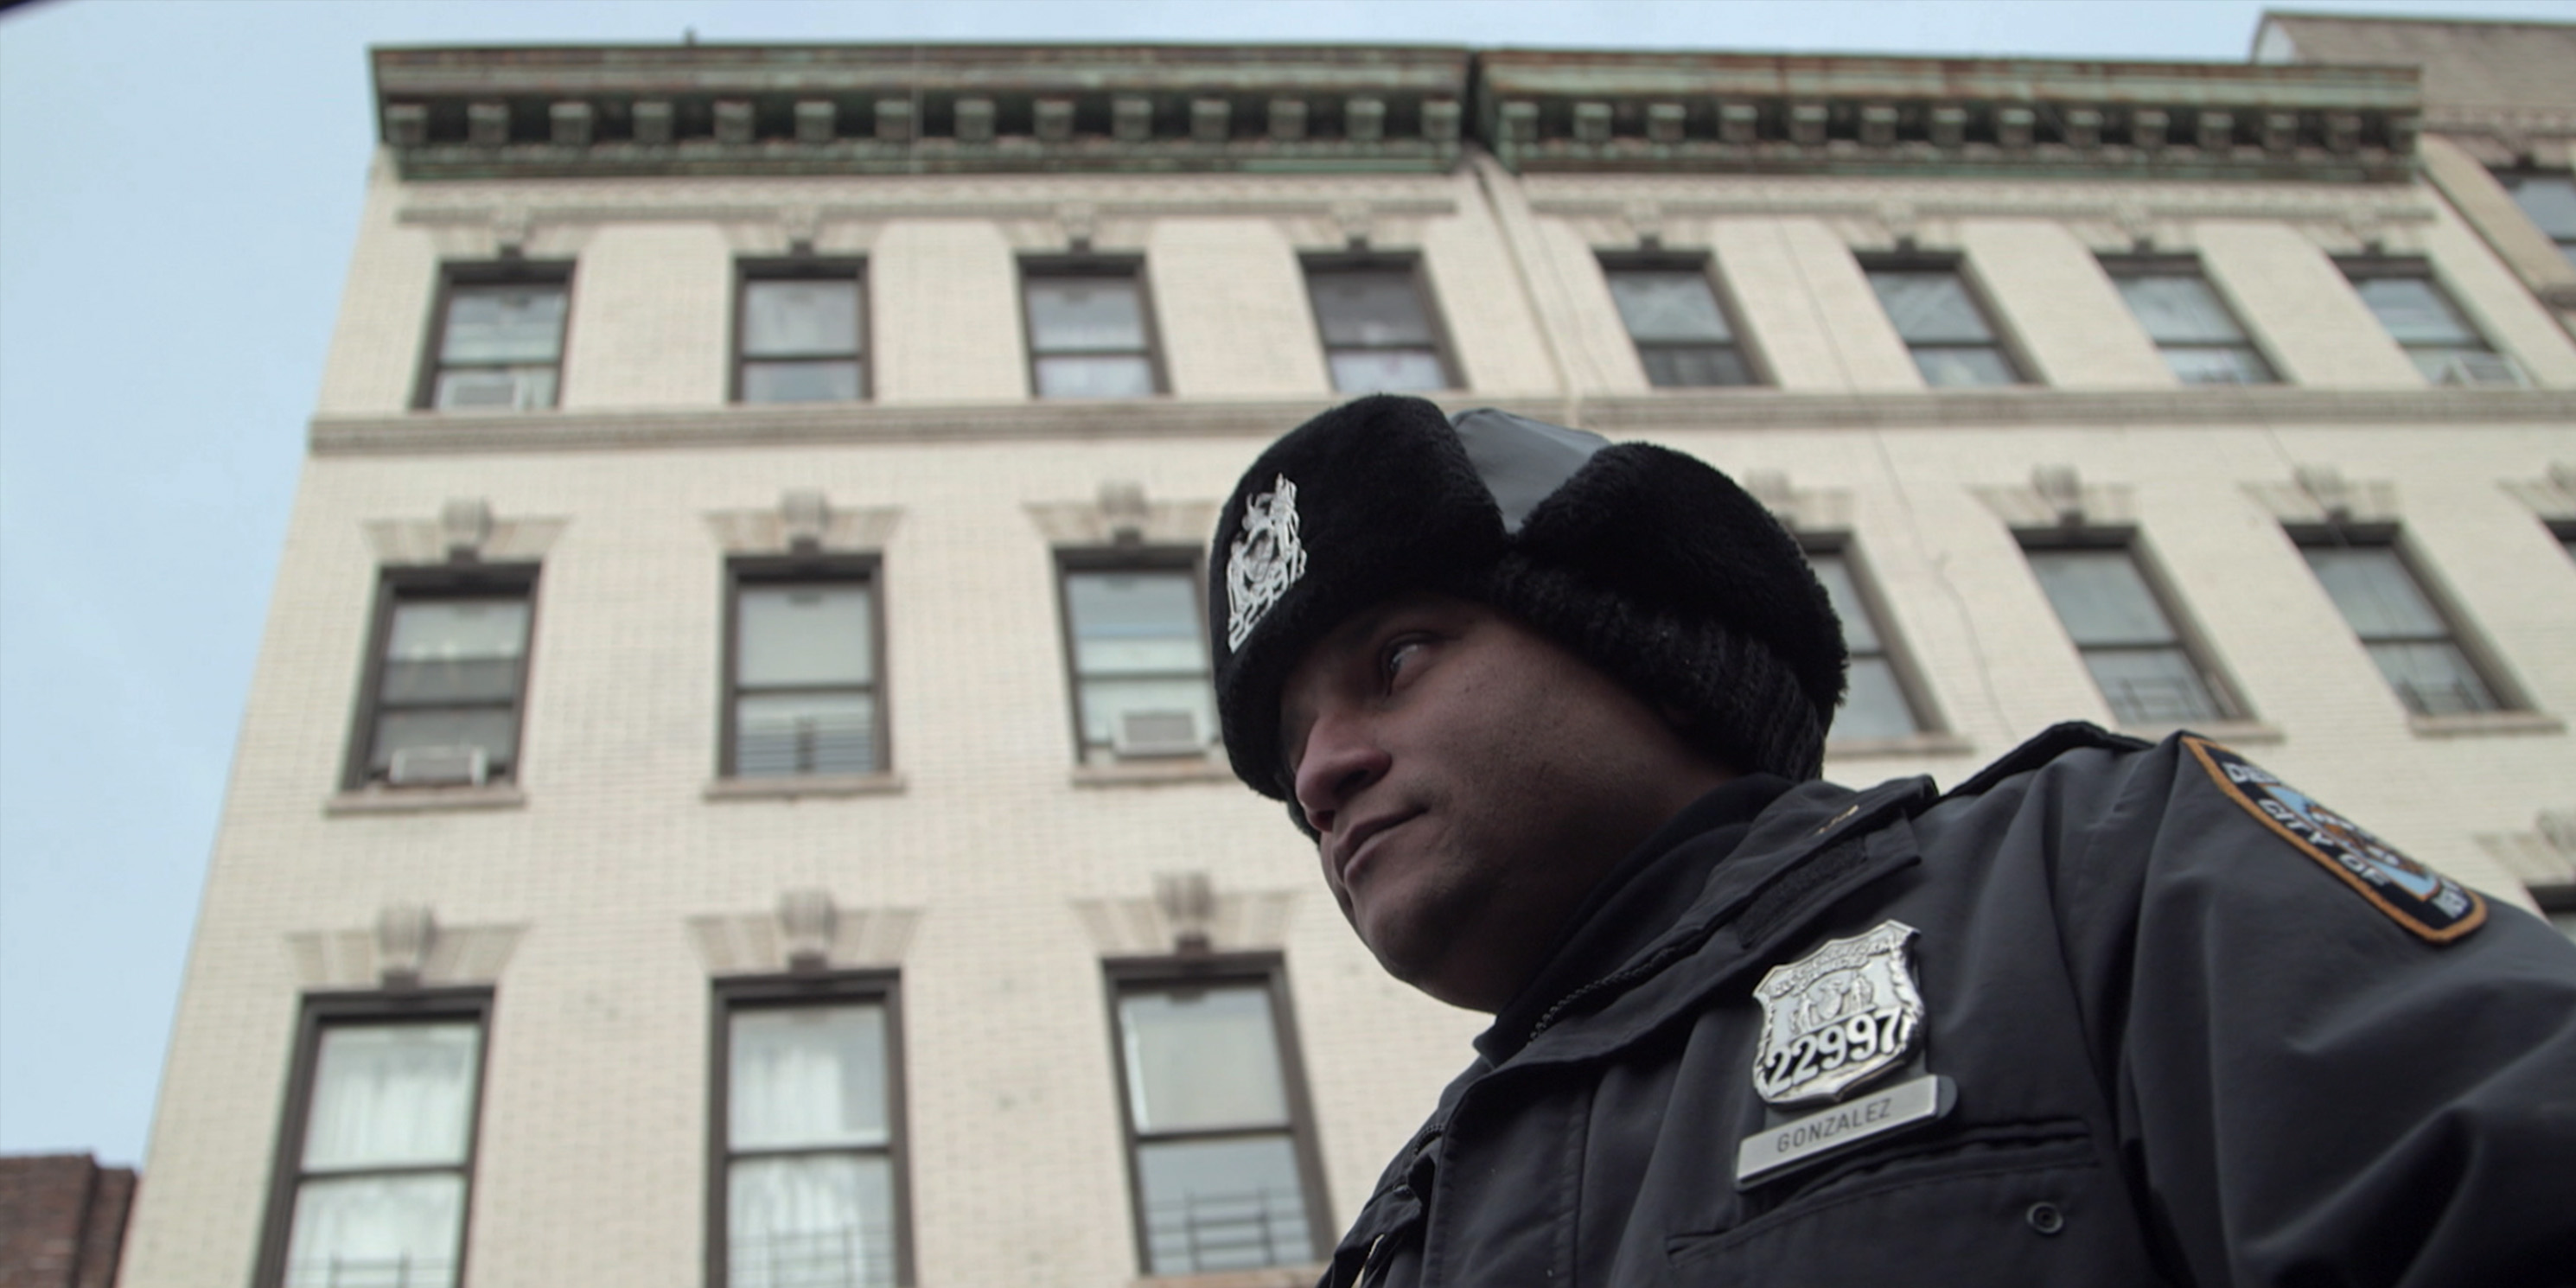 still from the movie Crime and Punishment, police officer outside building